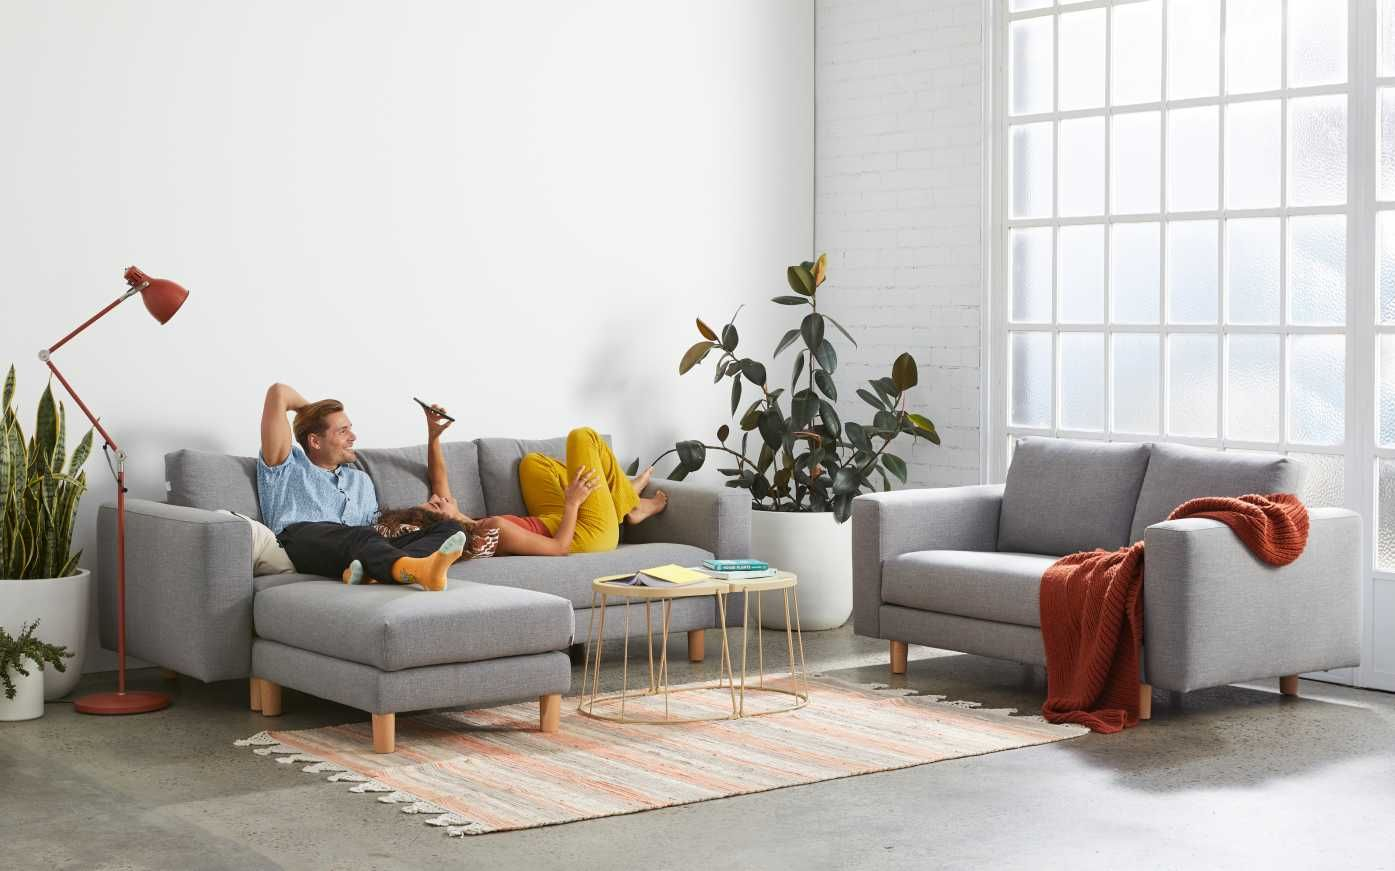 The Koala Sofa Range In 2 Seater 3 Seater Ottoman Free Express Delivery Easy Assembly Koala Living Room Sofa Design Sofa Next Single Seater Sofa